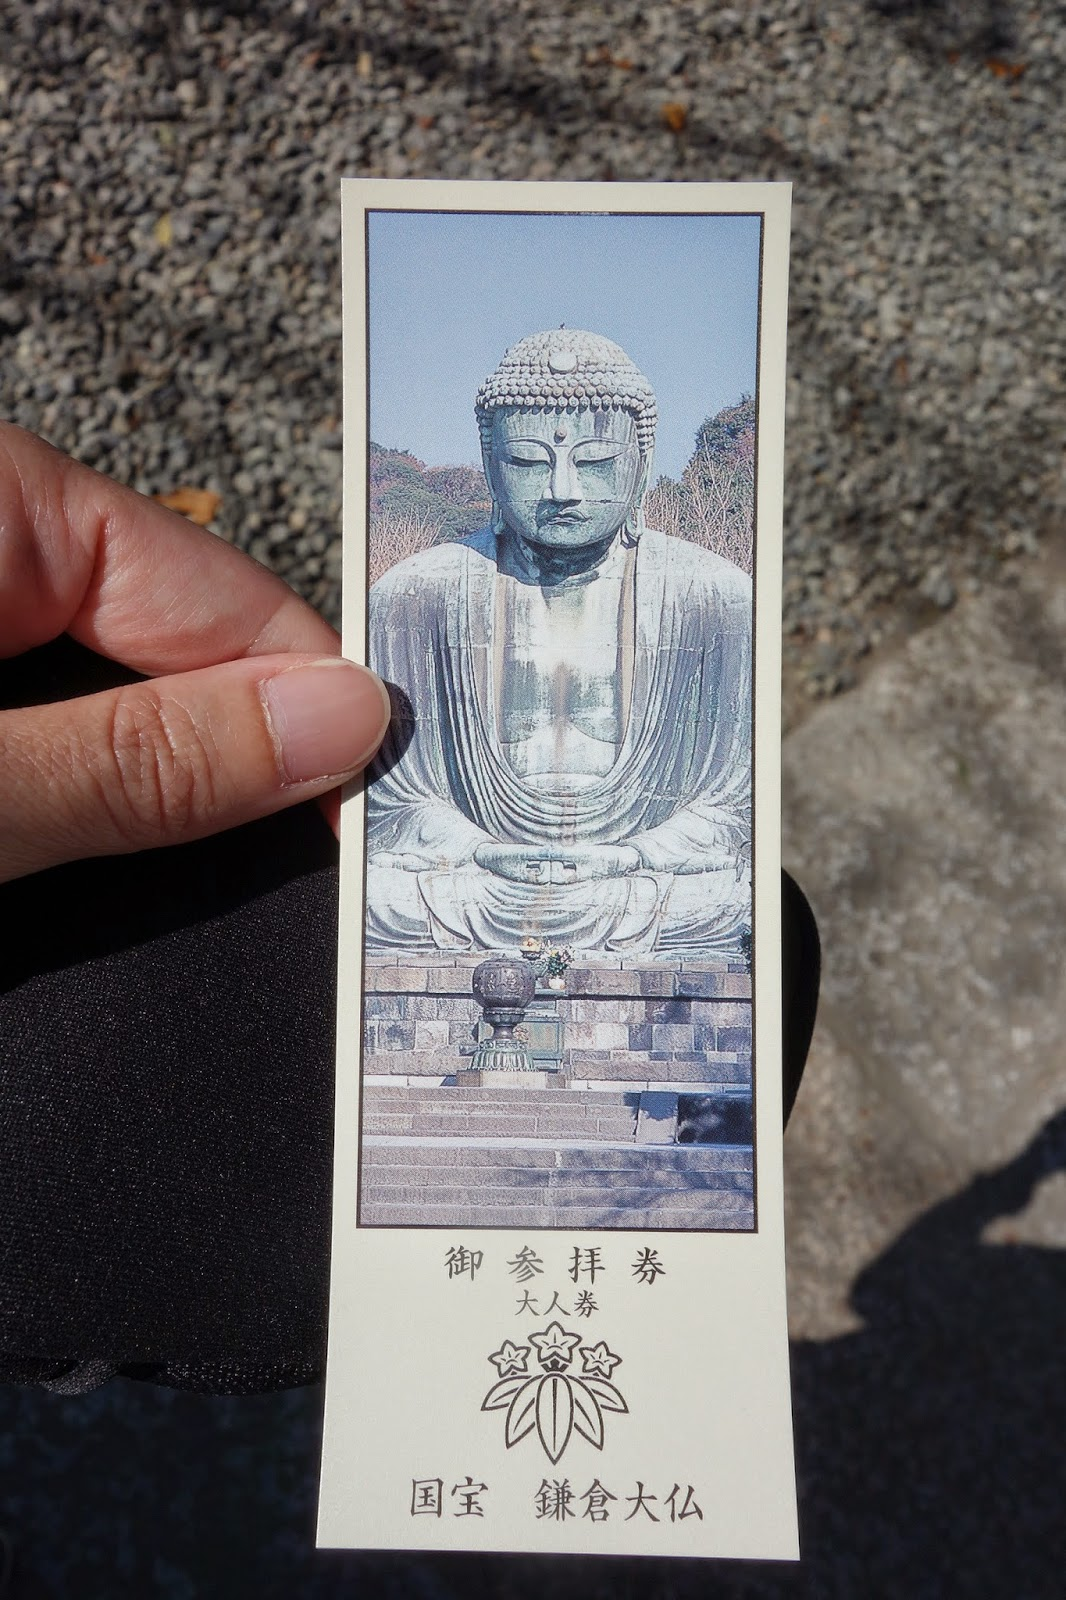 kamakura japan great buddha ticket